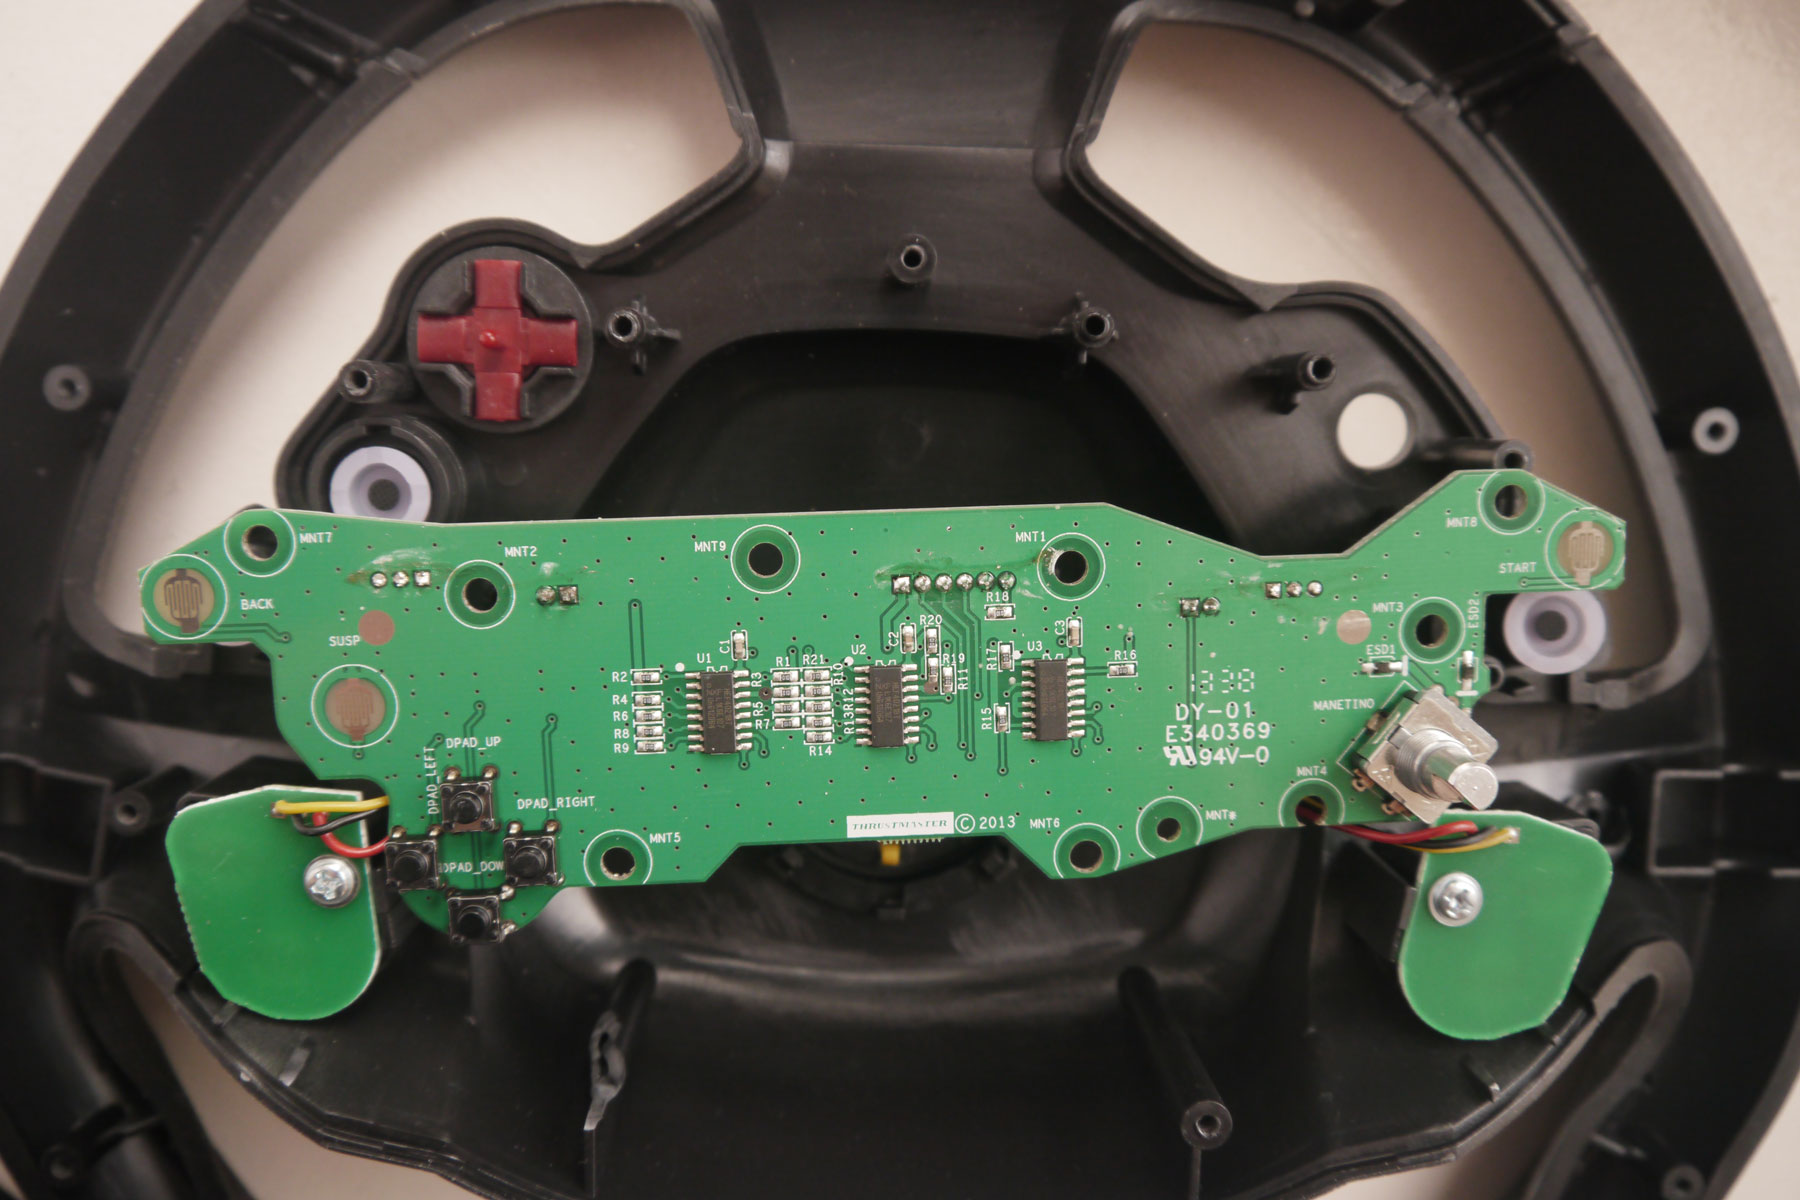 Hacking A Thrustmaster TX RW Gaming Wheel With Arduino Uno Part 1 My Techy Life